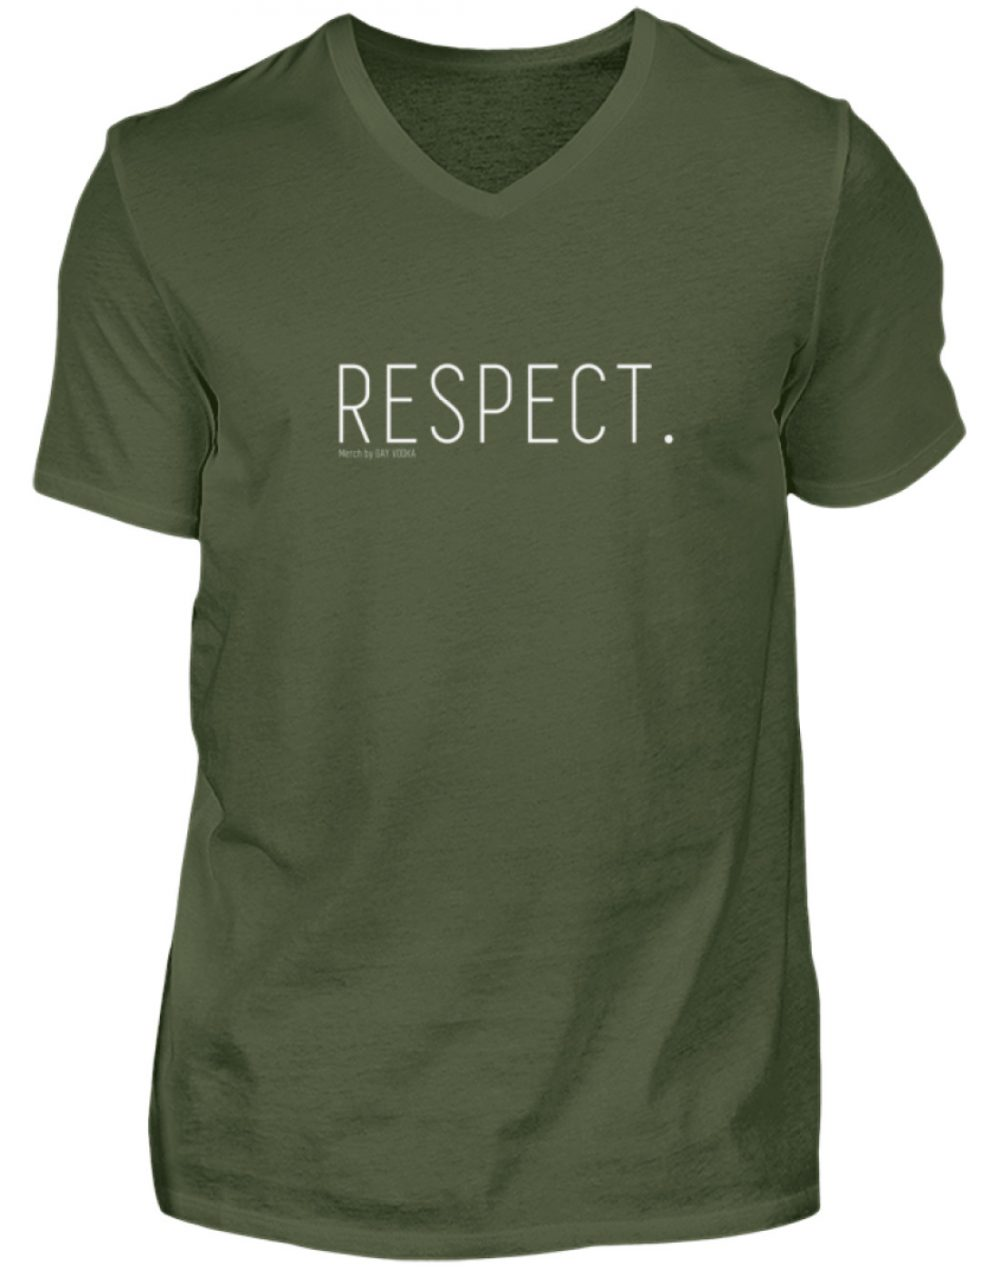 RESPECT. - Herren V-Neck Shirt-2587